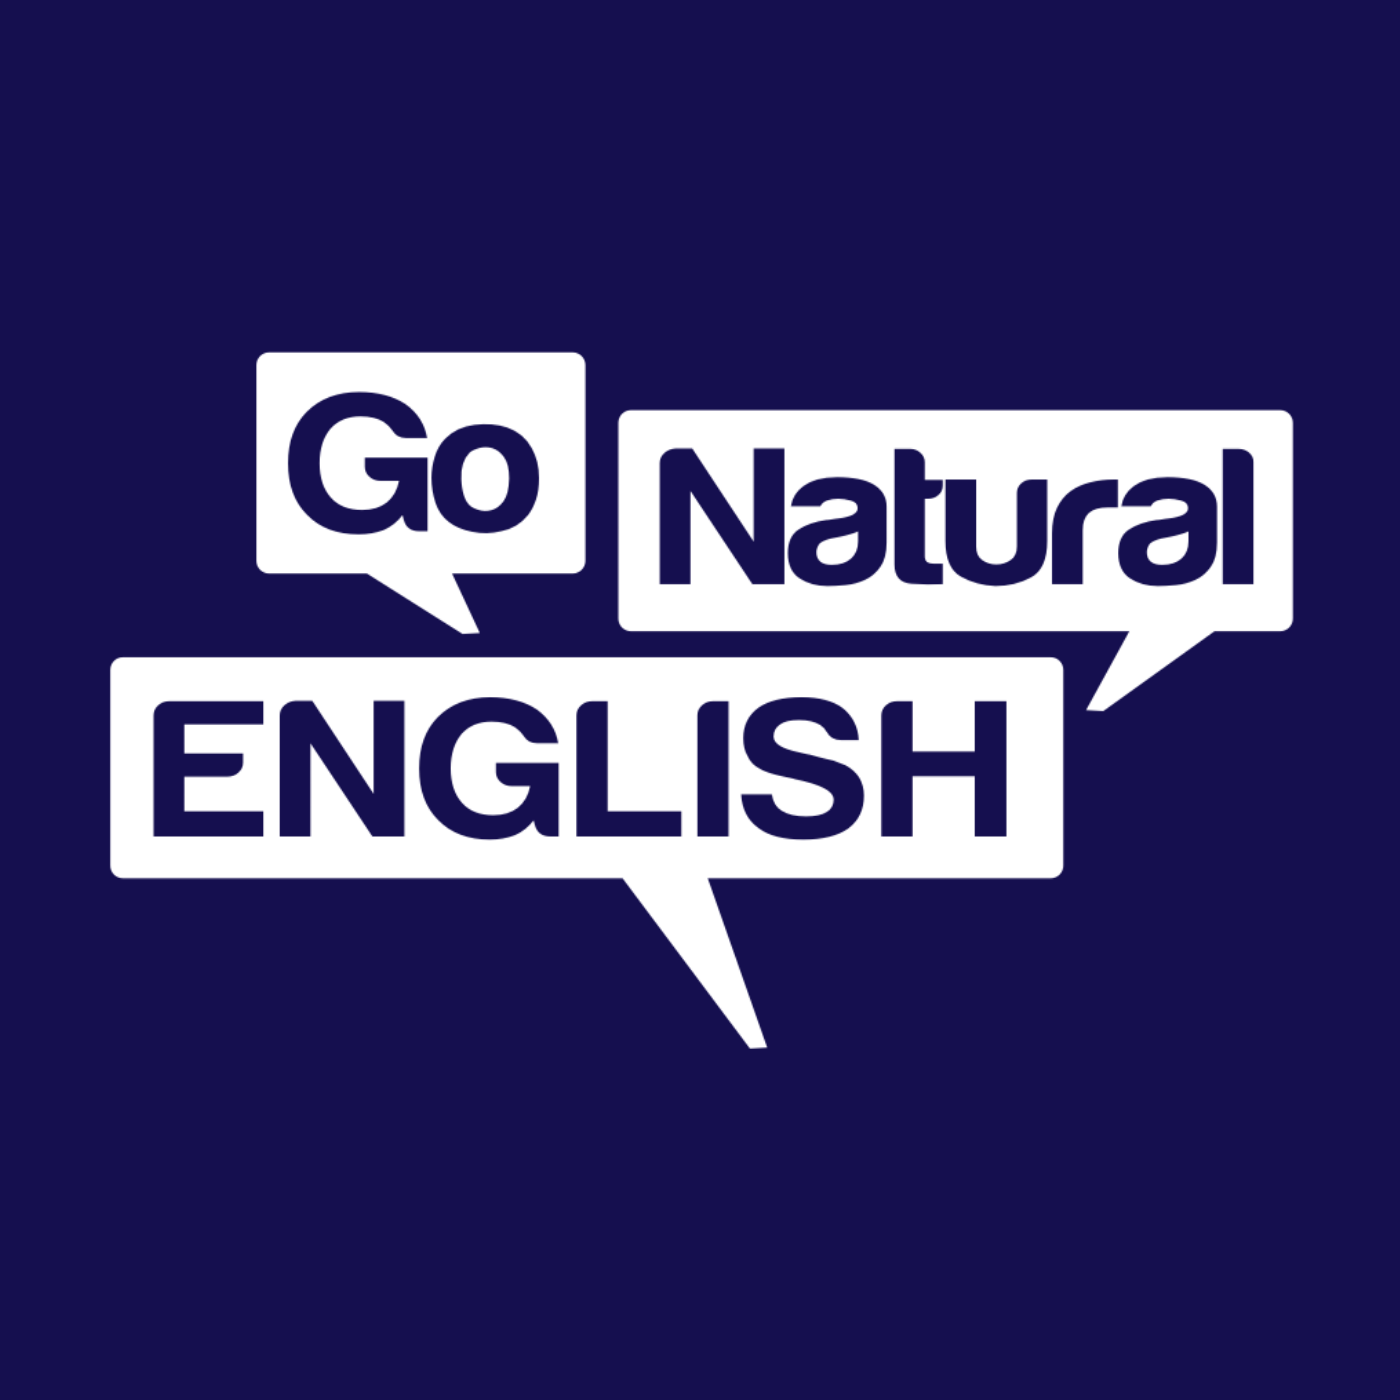 Regional Accents in American English